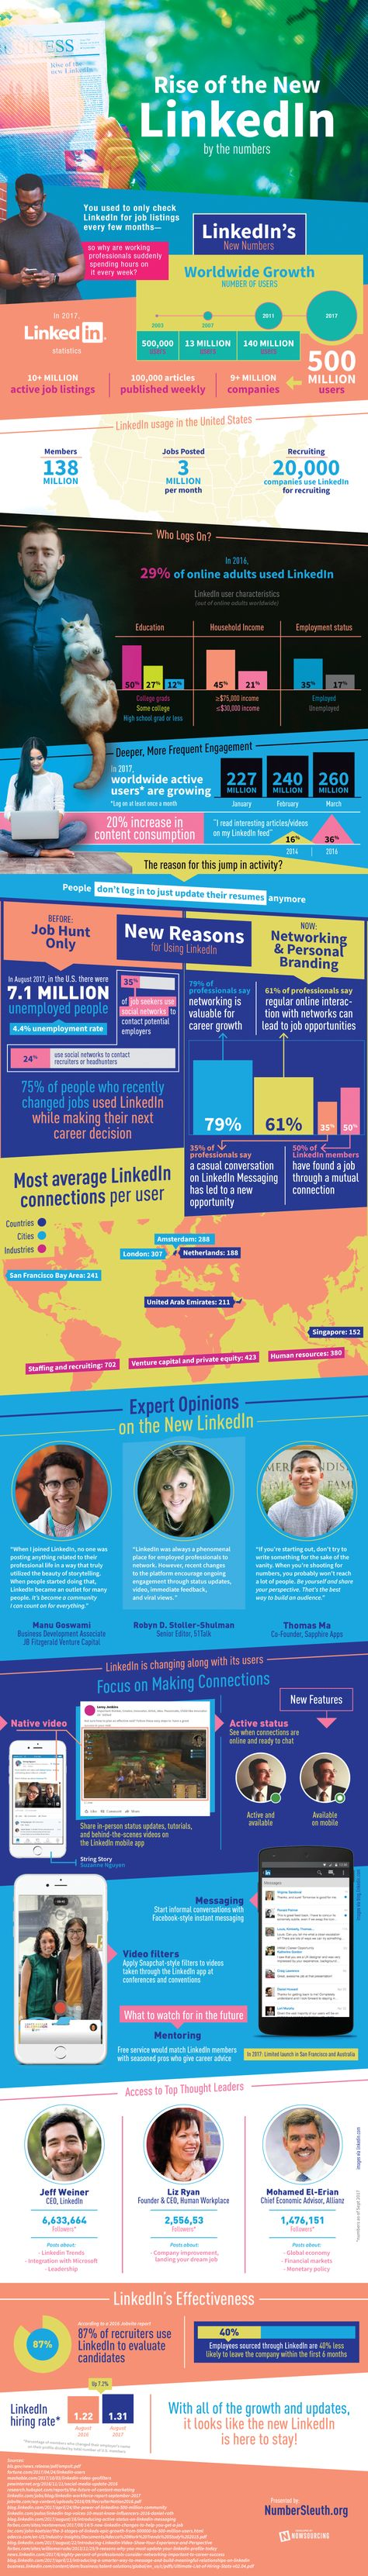 Rise Of The New LinkedIn By The Numbers Infographic